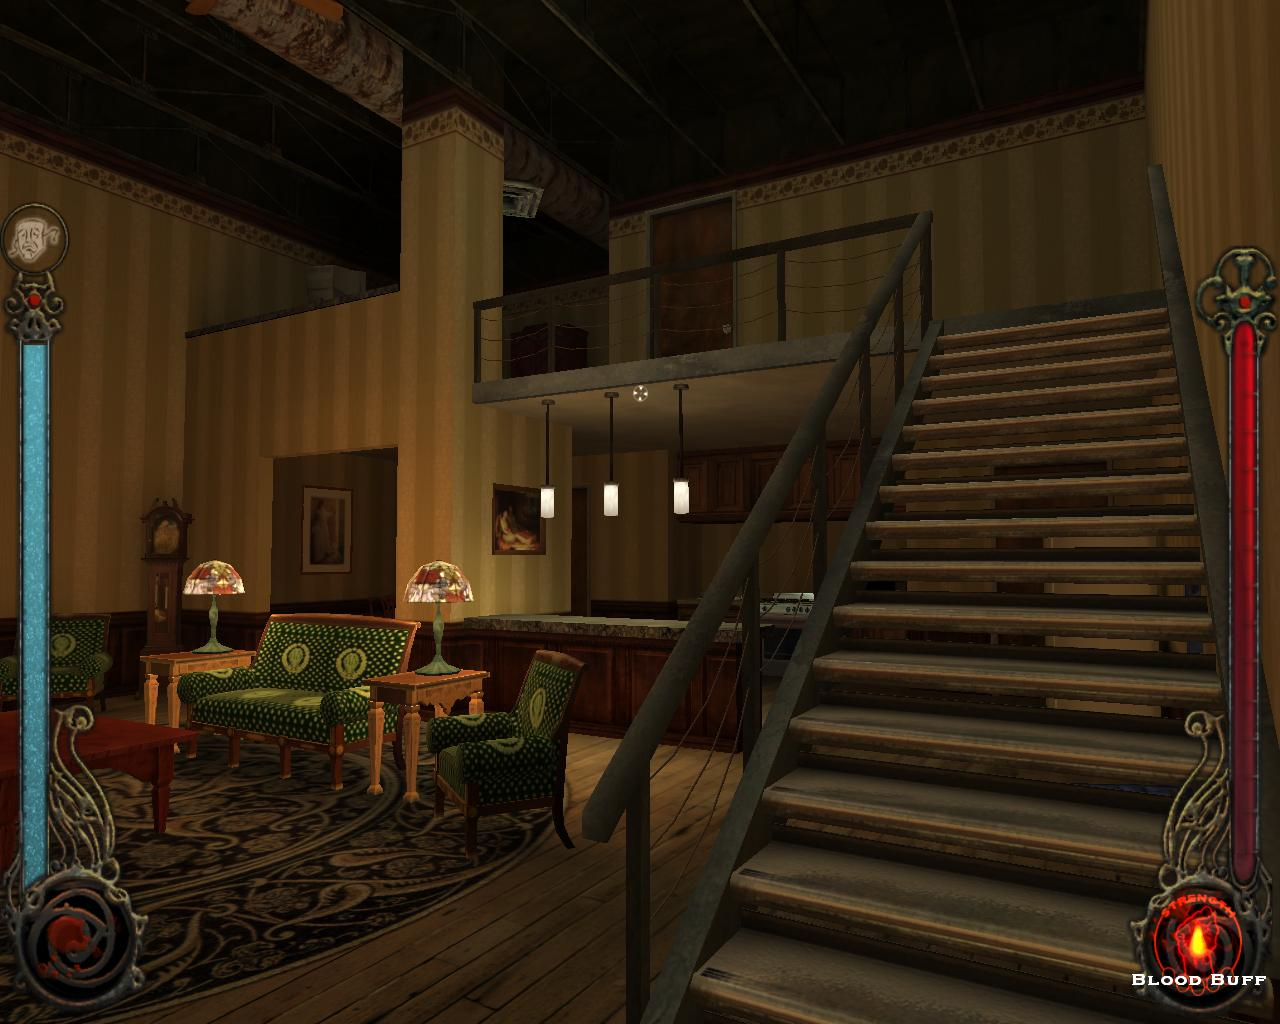 Build A Gaming Room Mod The Sims - Skyline Apartment From Vampire The